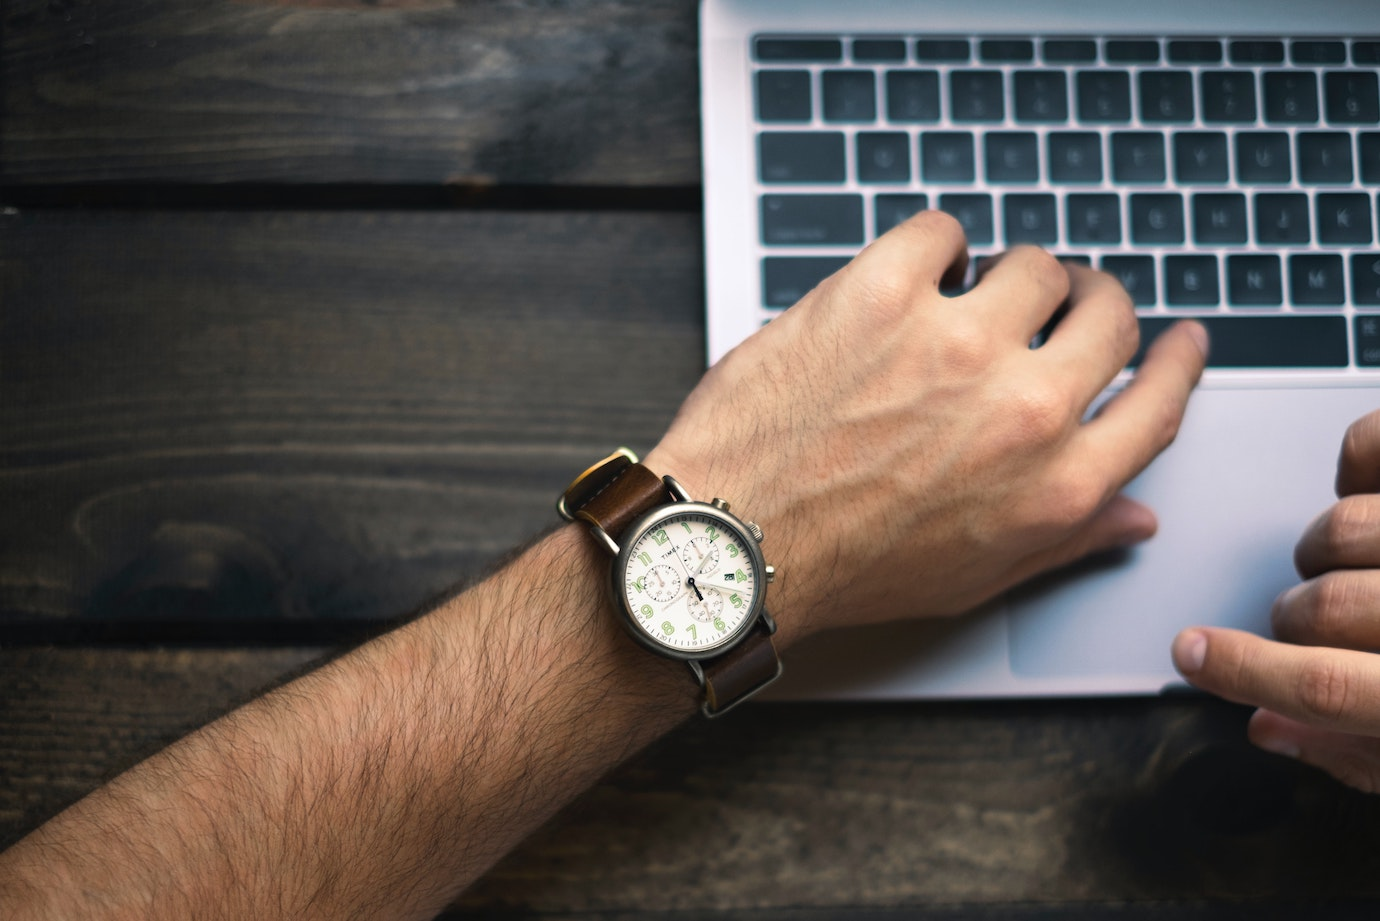 Man looking at Timex wristwatch with a laptop in the back